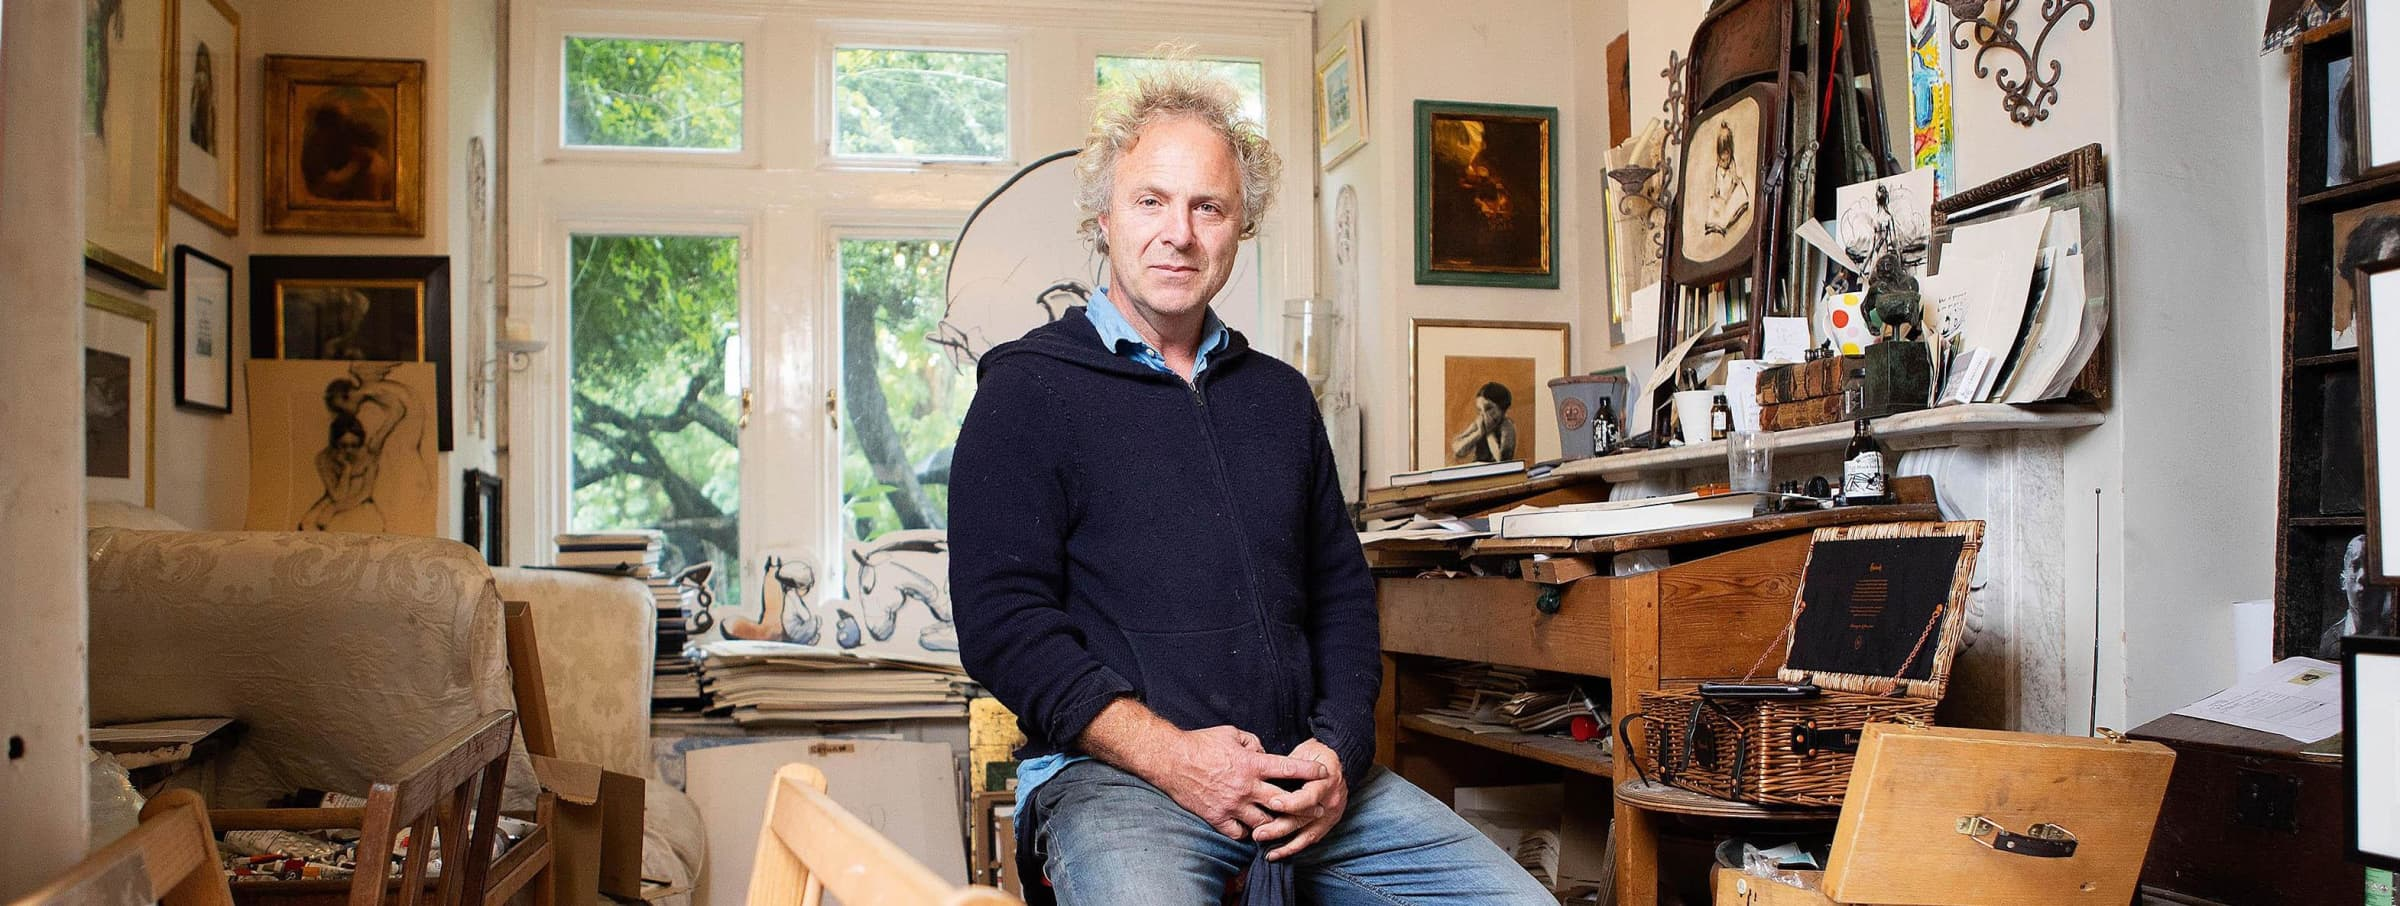 Charlie Mackesy Wins Maddox Gallery Artist of the Year , At the GQ Men of the Year Awards 2020